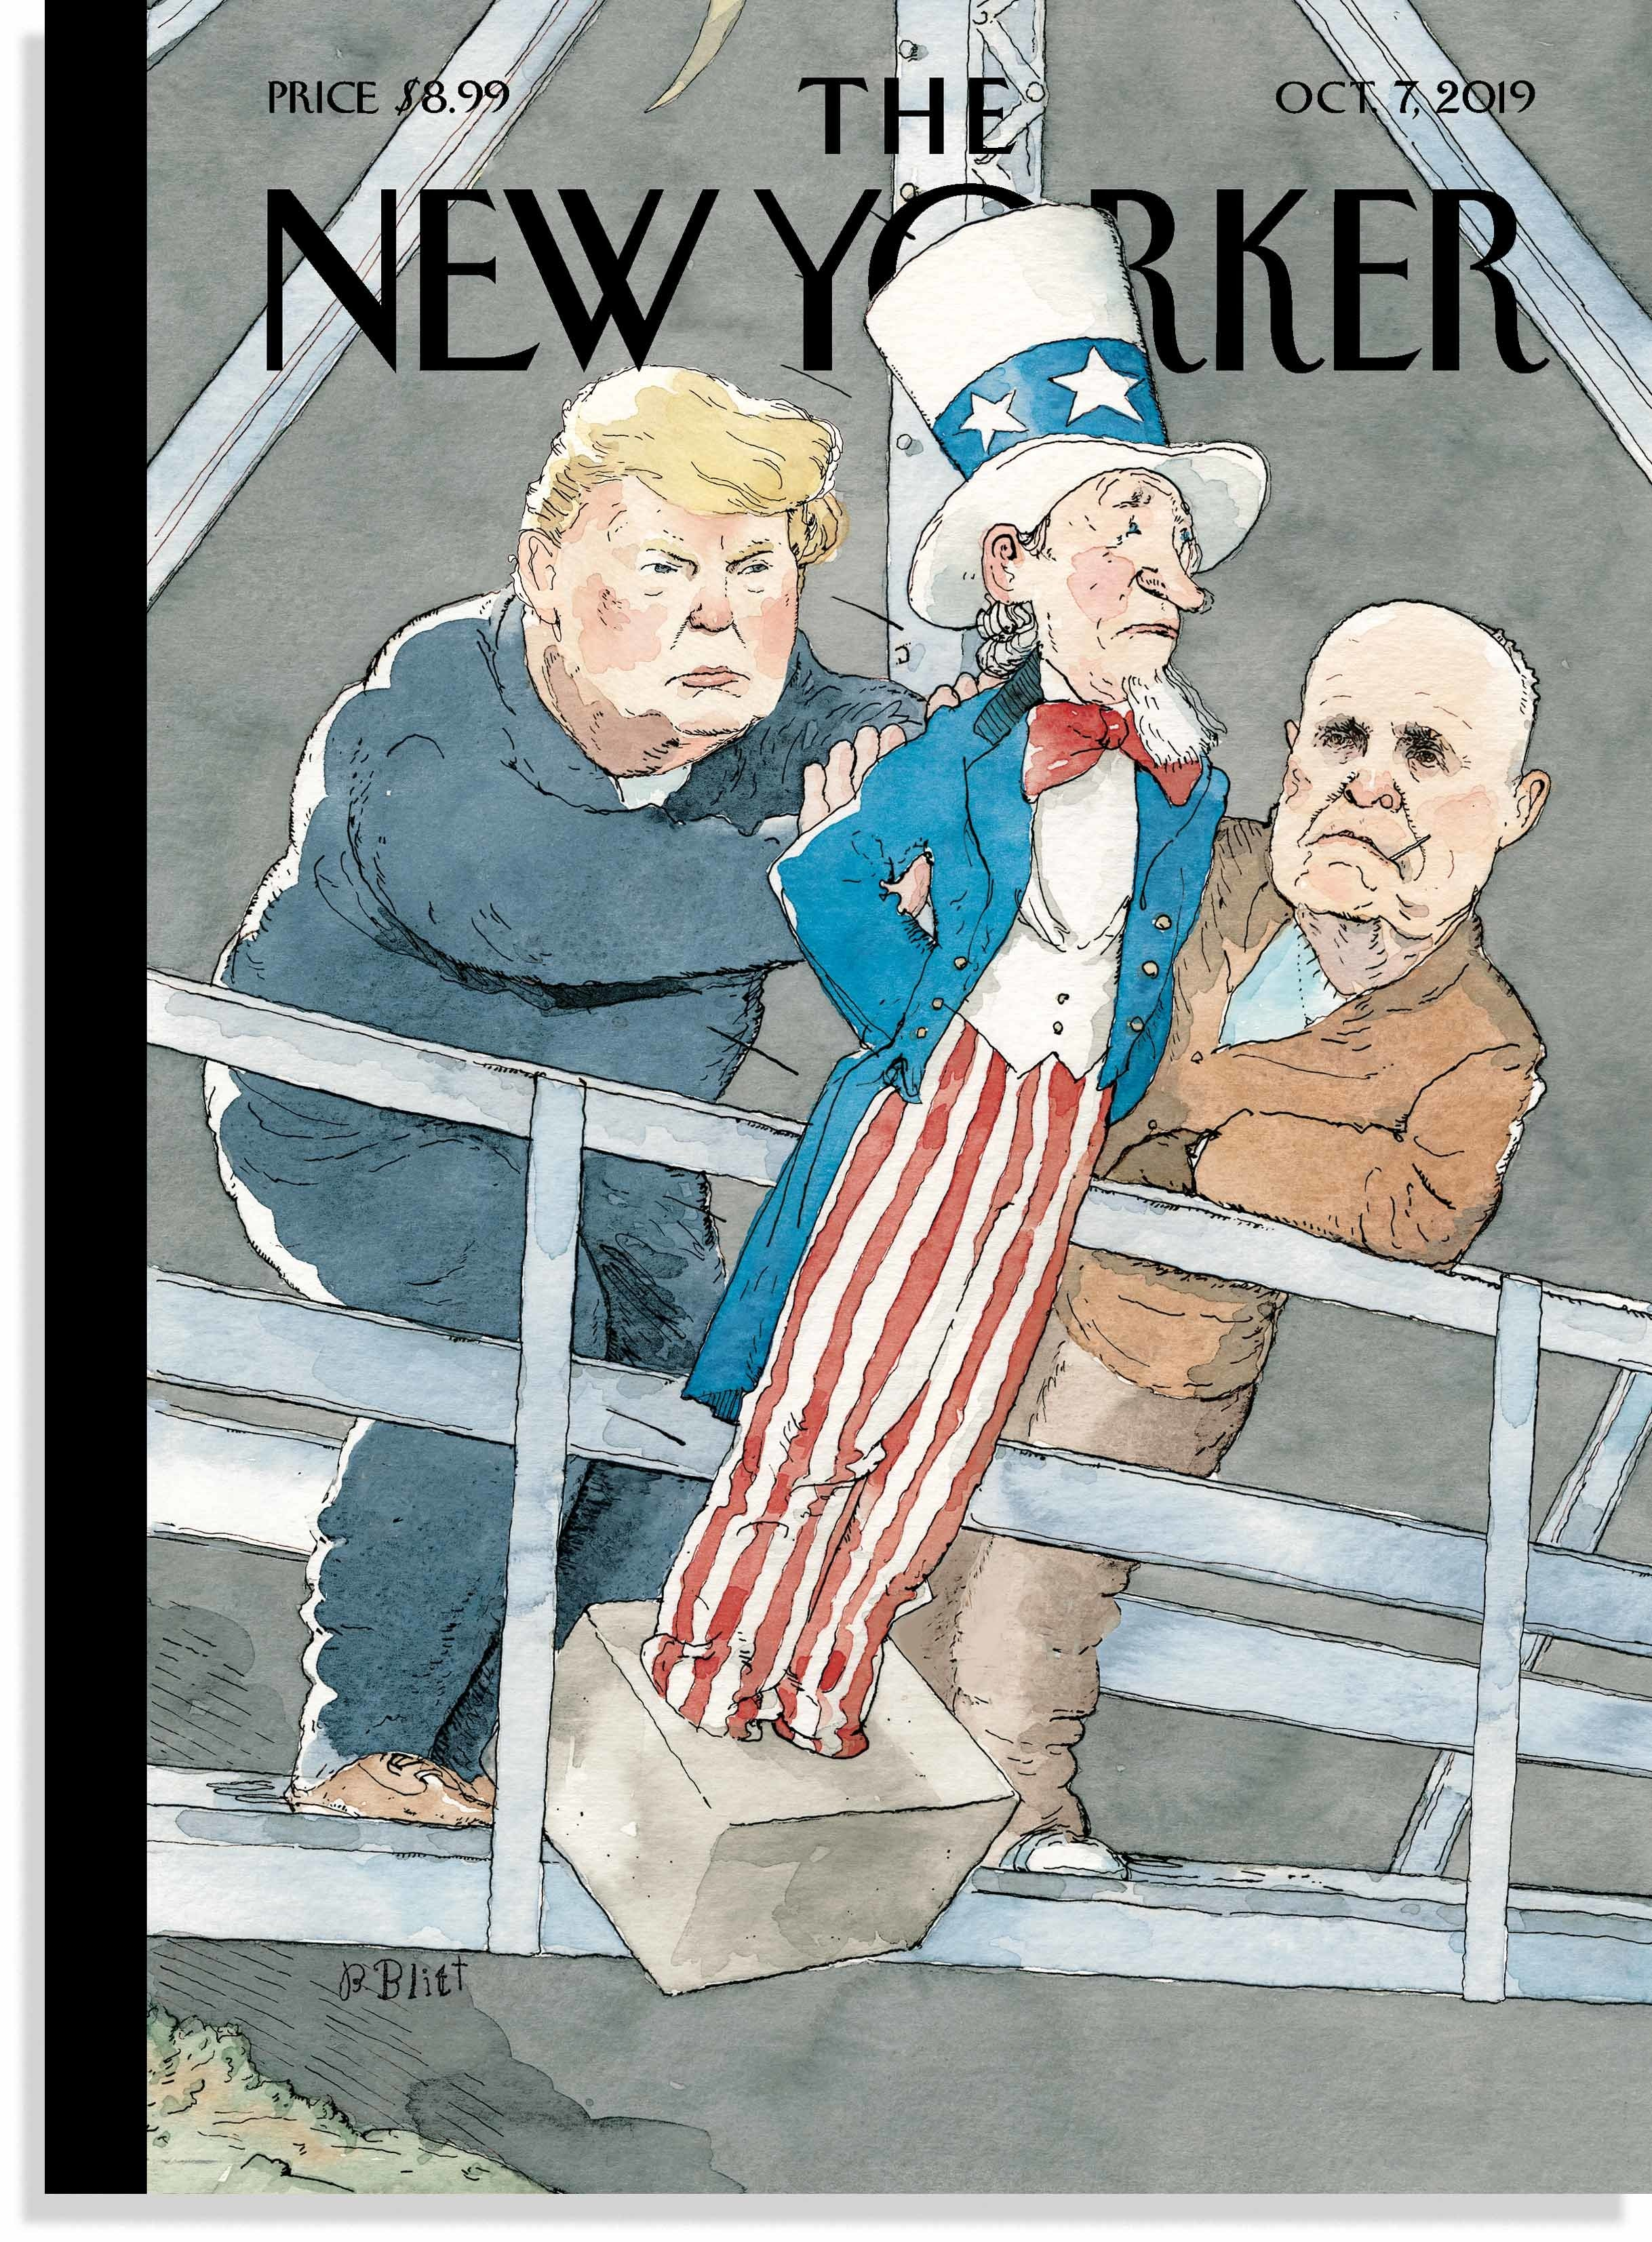 New Yorker Cover Depicts Trump and Giuliani as Mobsters Carrying Out a Hit on Uncle Sam